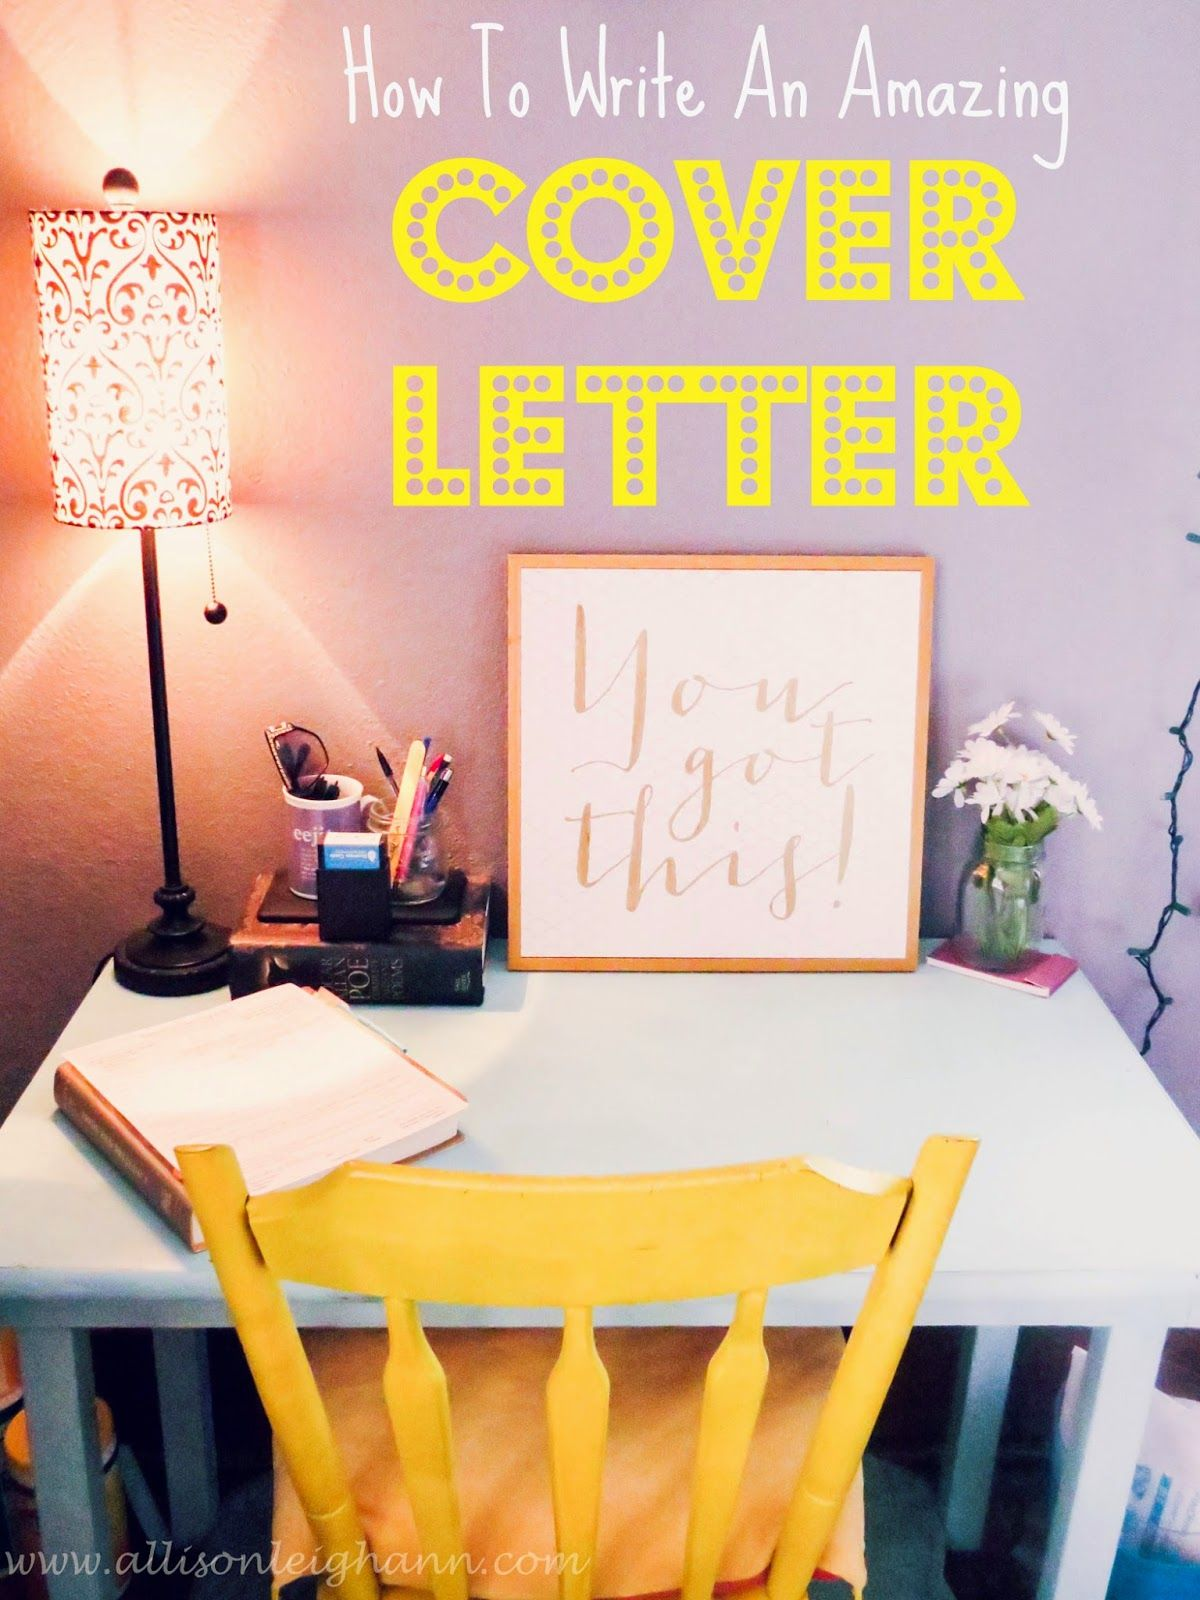 12 Reasons Why You Should Hire Me What Can Learn From This Unique Cover Letter